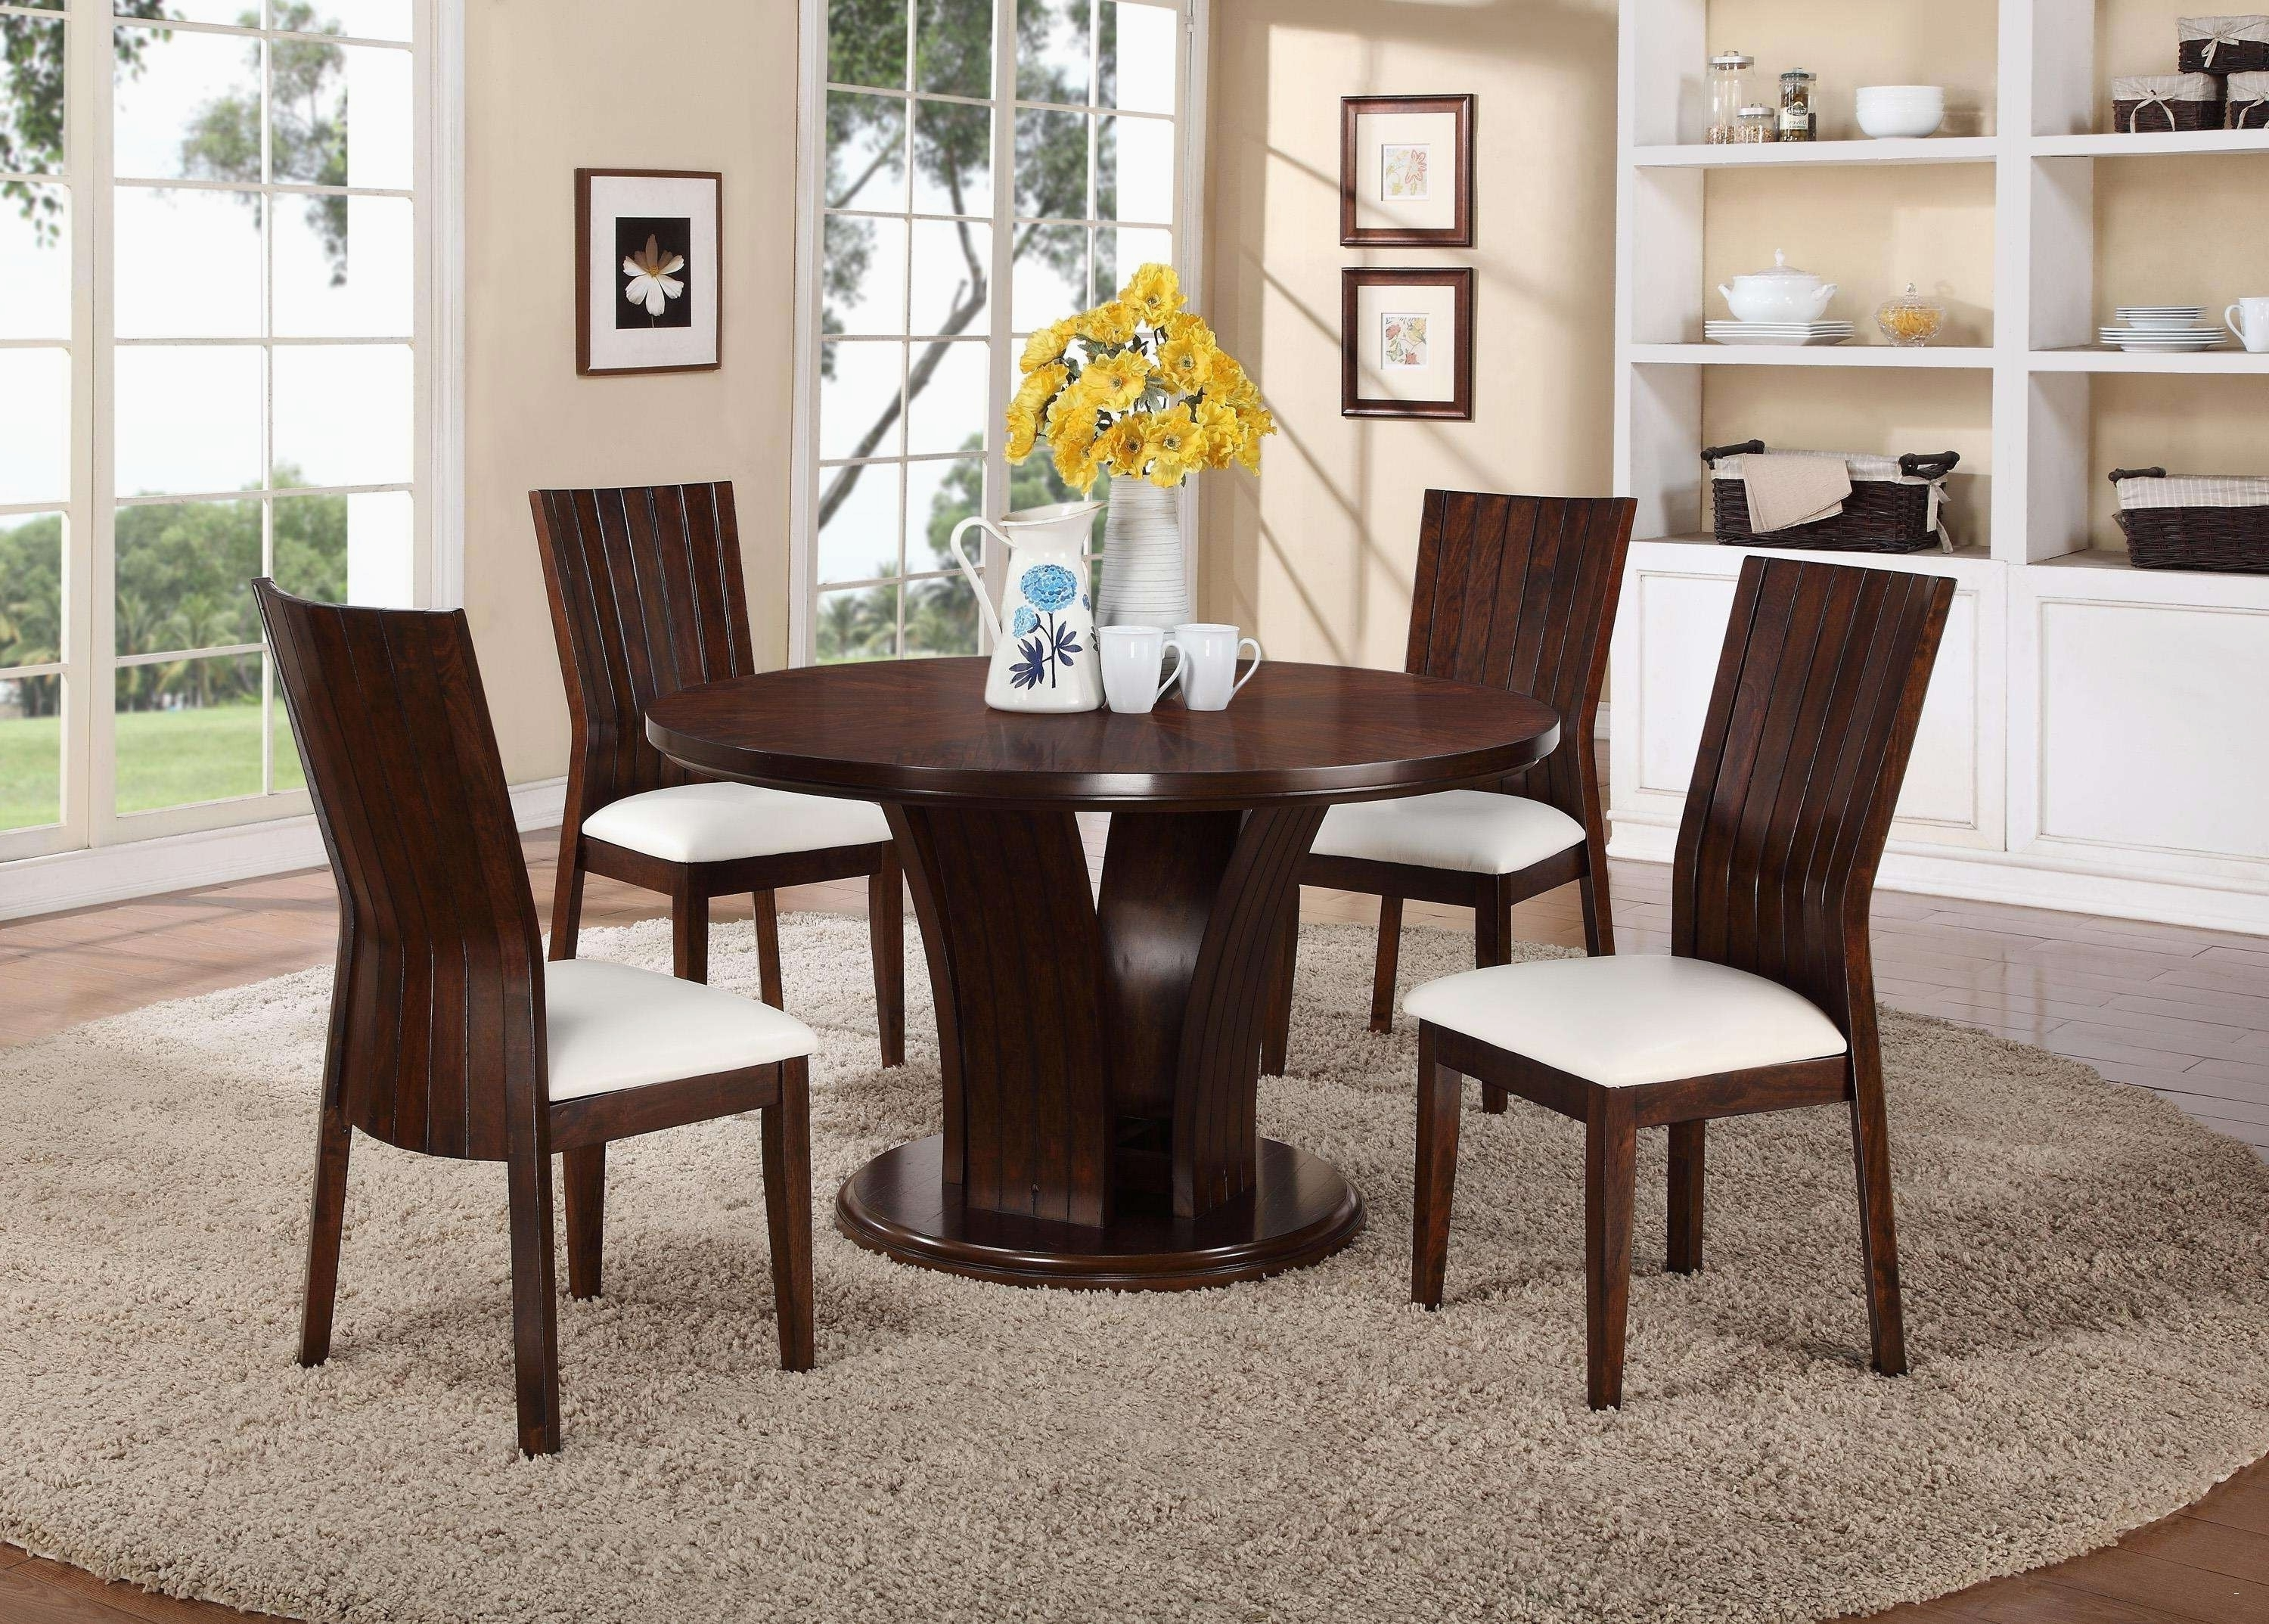 6 Seat Dining Tables Pertaining To Most Up To Date Extended Dining Table And 6 Chairs Beautiful 34 Luxury 6 Seat (Gallery 19 of 25)